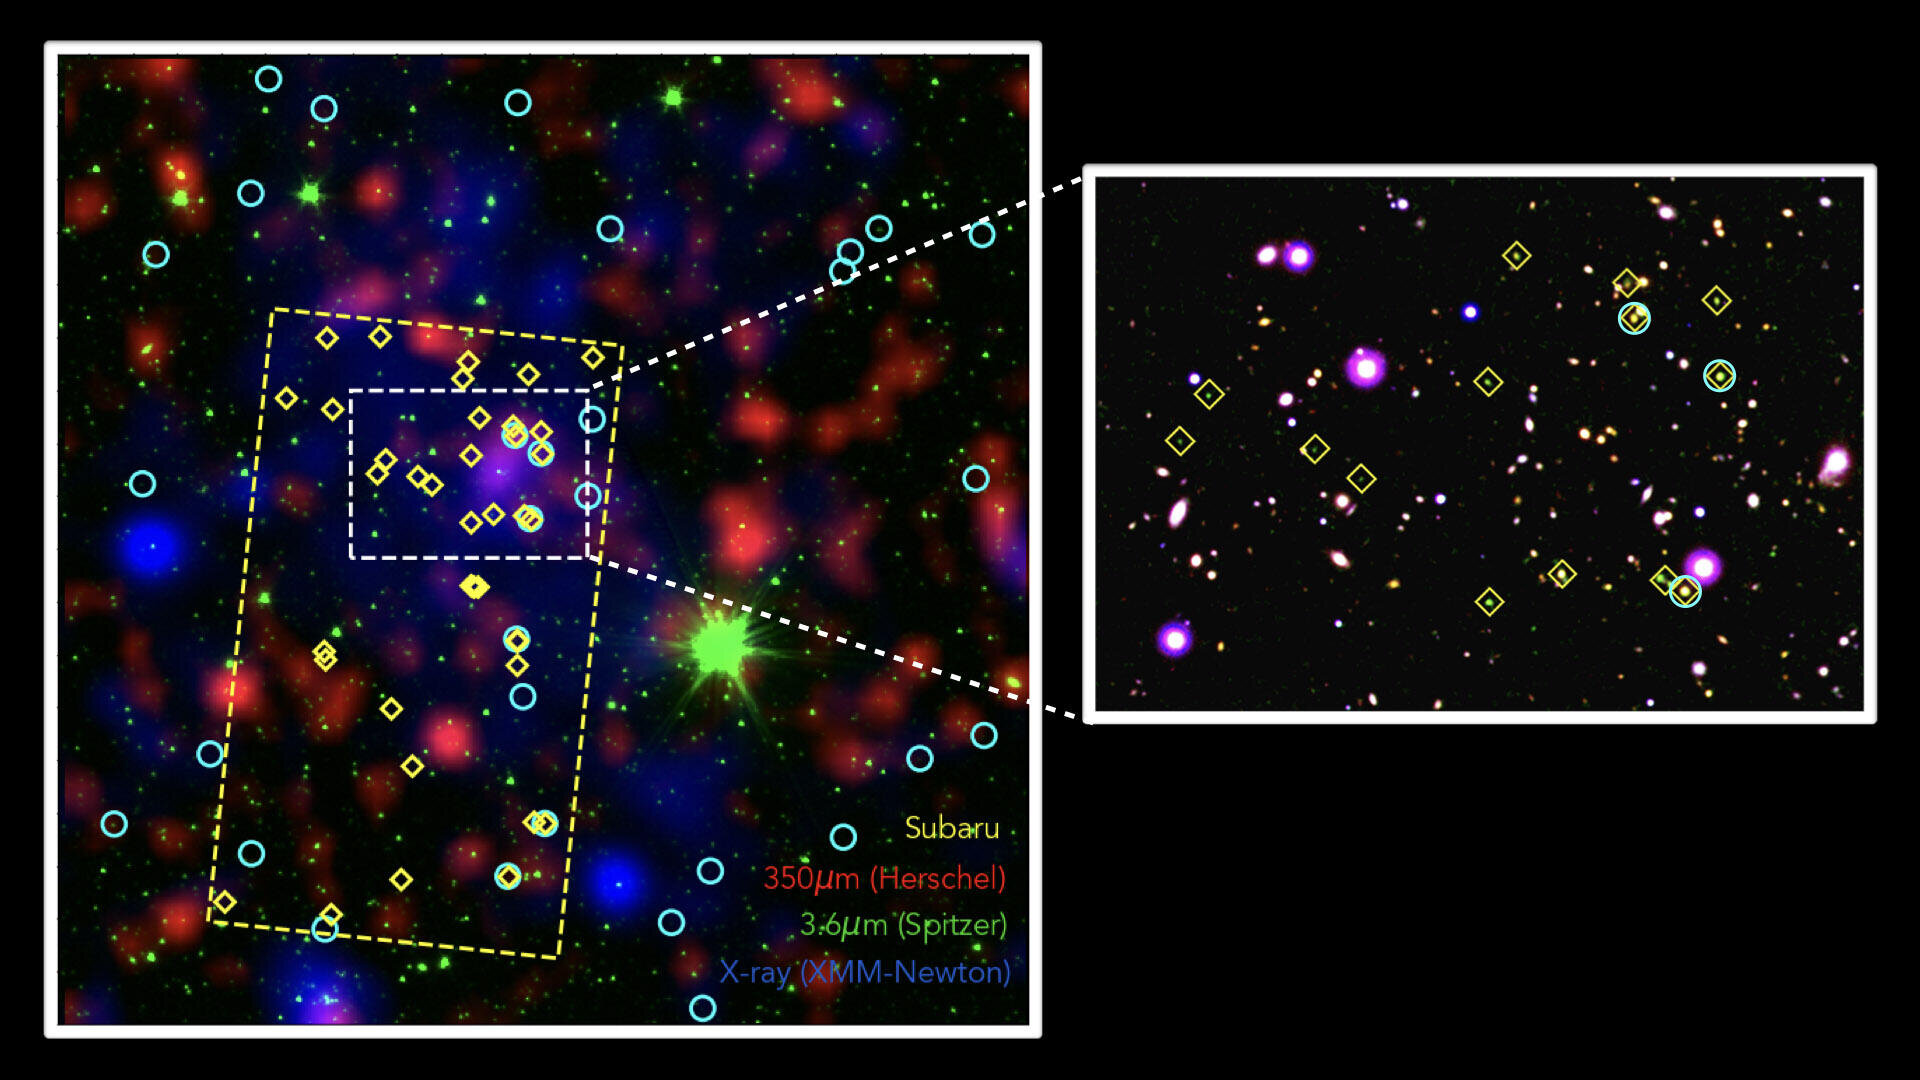 Astronomers discover a massive galaxy 'shipyard' in the distant universe